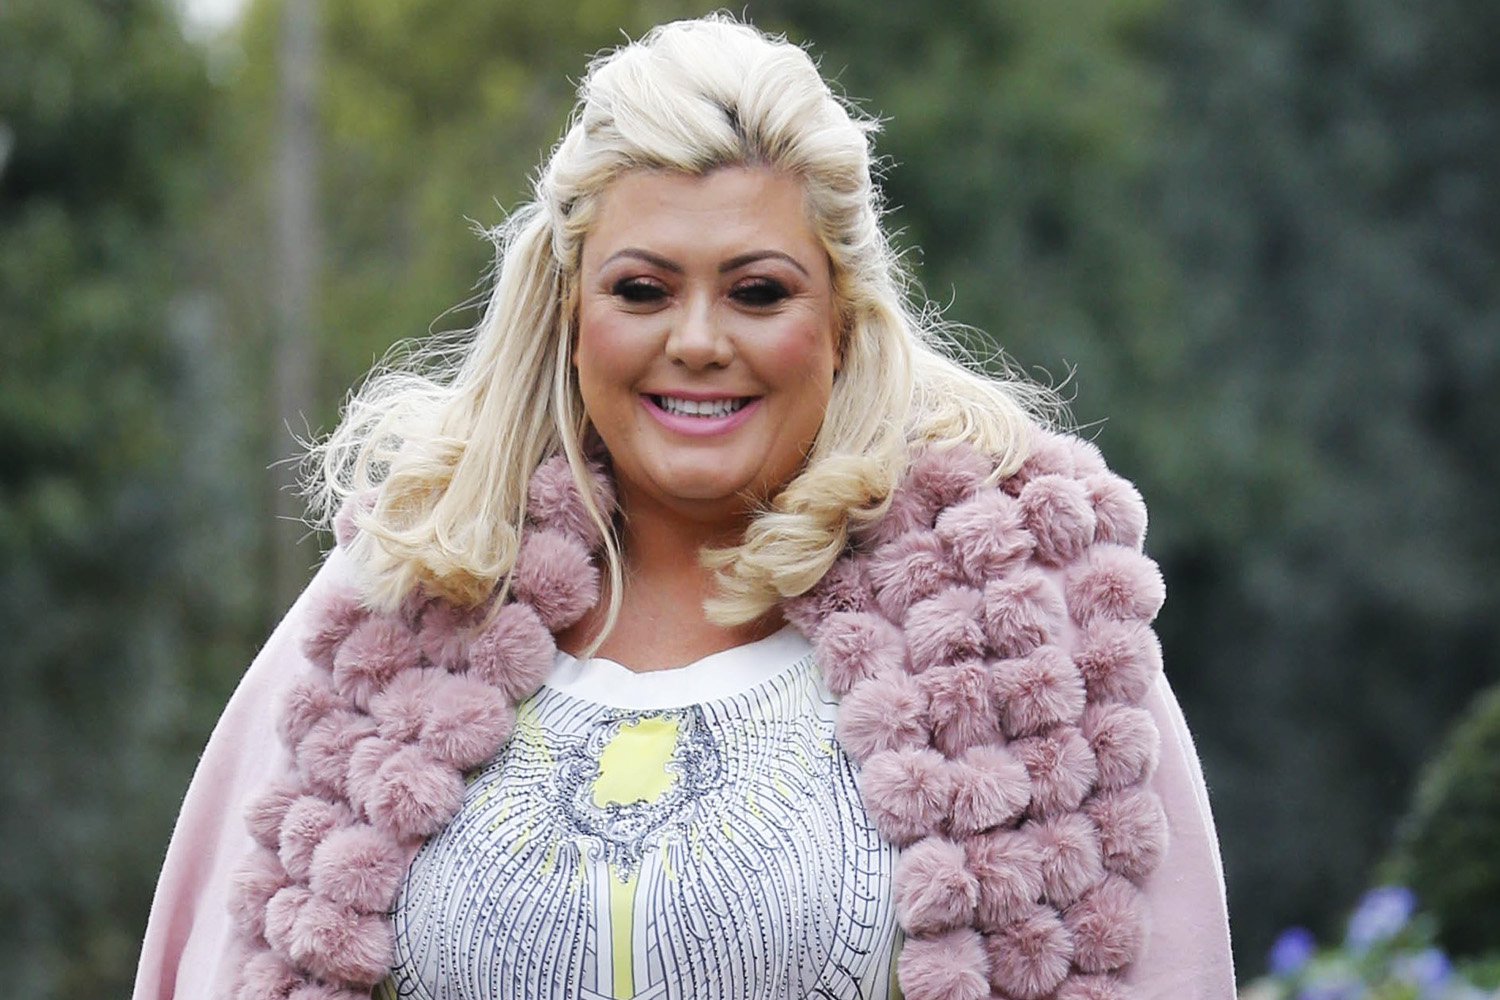 Gemma Collins shows off glowing tan as she enjoys holiday in the sun